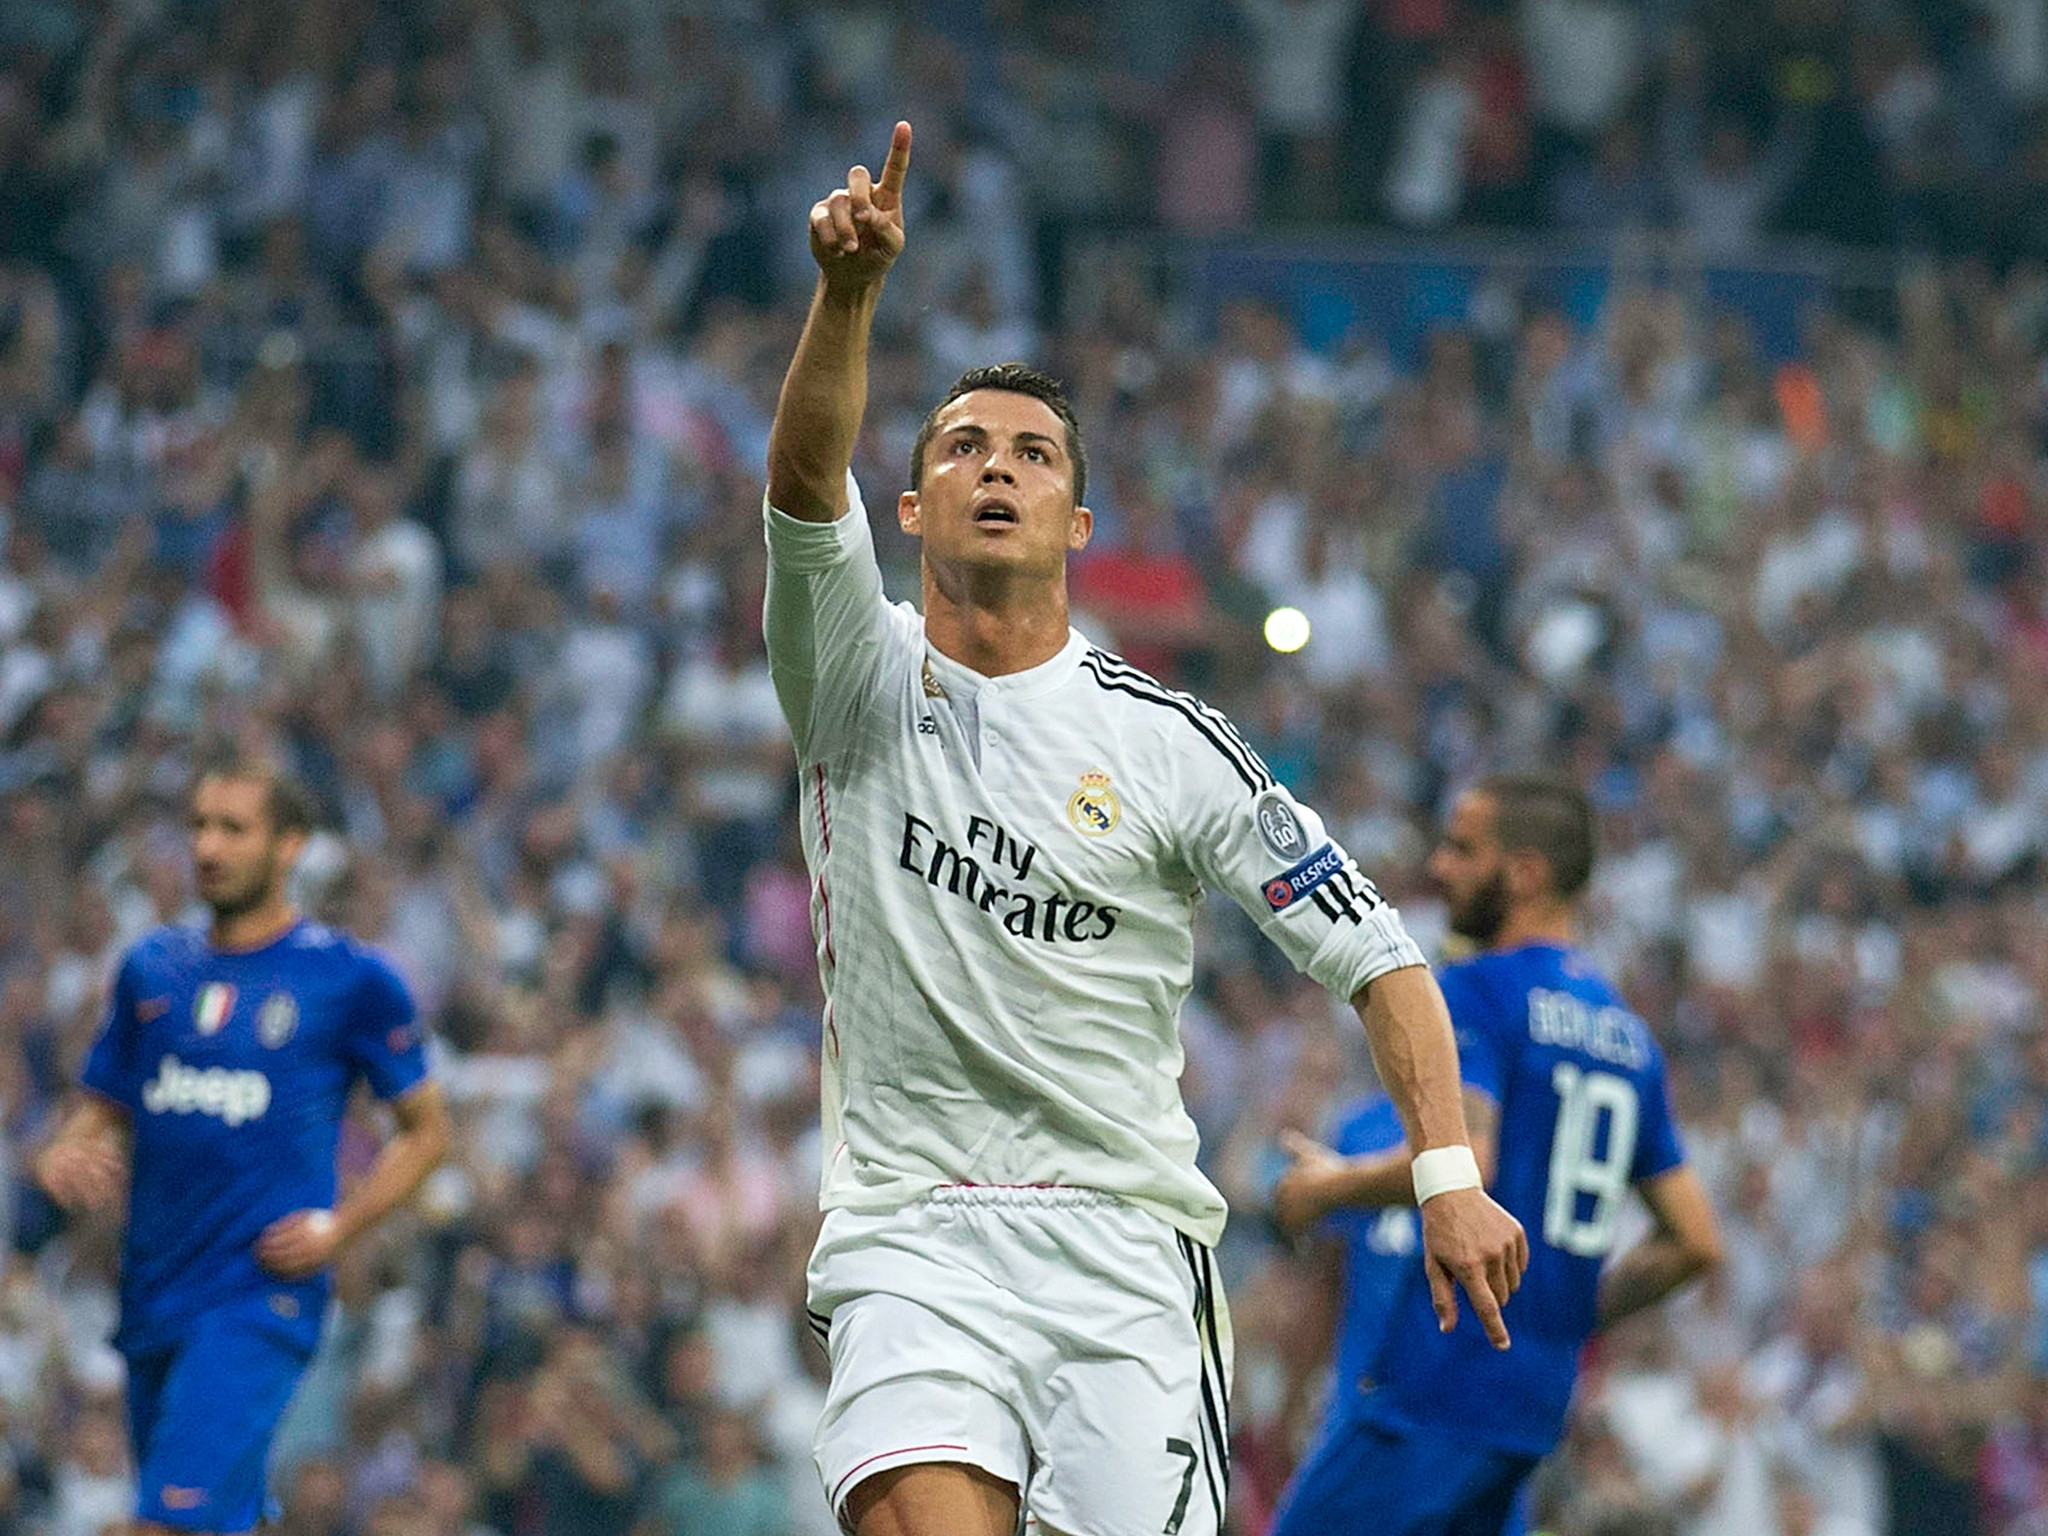 Cristiano Ronaldo to PSG: French club plotting move for Real Madrid star |  The Independent